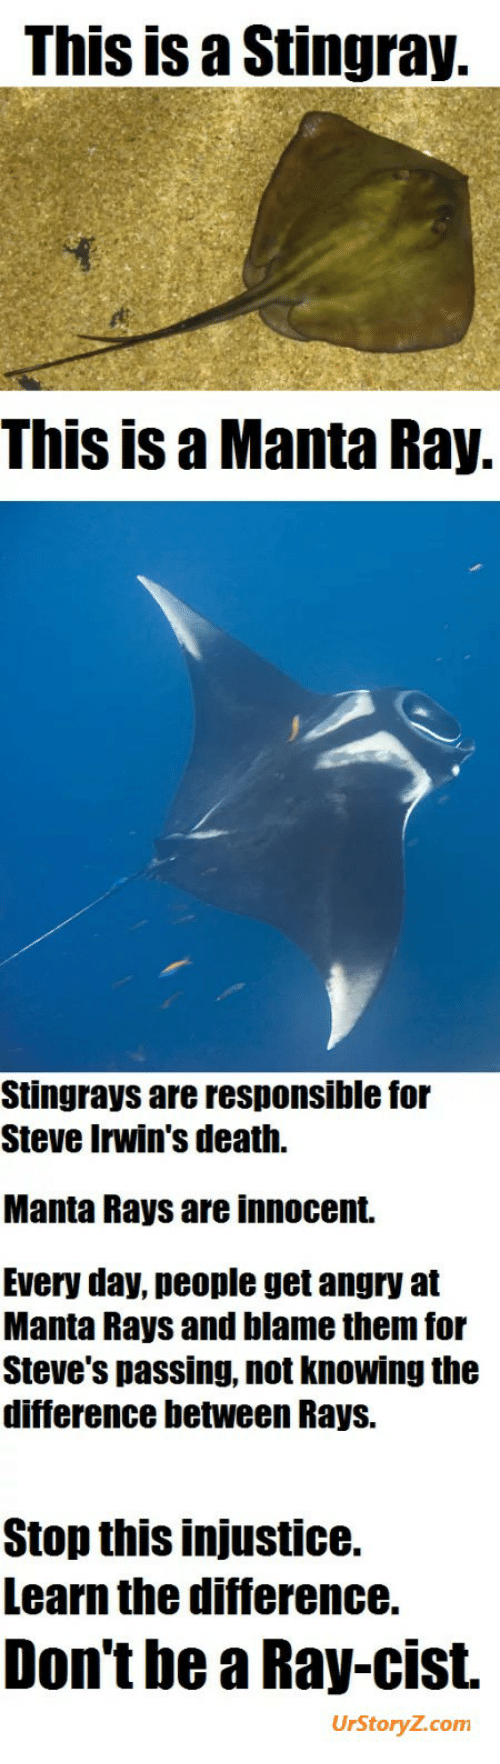 Death, Angry, and Com: This is a Stingray.  This is a Manta Ray.  Stingrays are responsible for  Steve Irwin's death.  Manta Rays are innocent.  Every day, people get angry at  Manta Rays and blame them for  Steve's passing, not knowing the  difference between Rays.  Stop this injustice.  Learn the difference.  Don't be a Ray-cist.  UrStoryZ.com